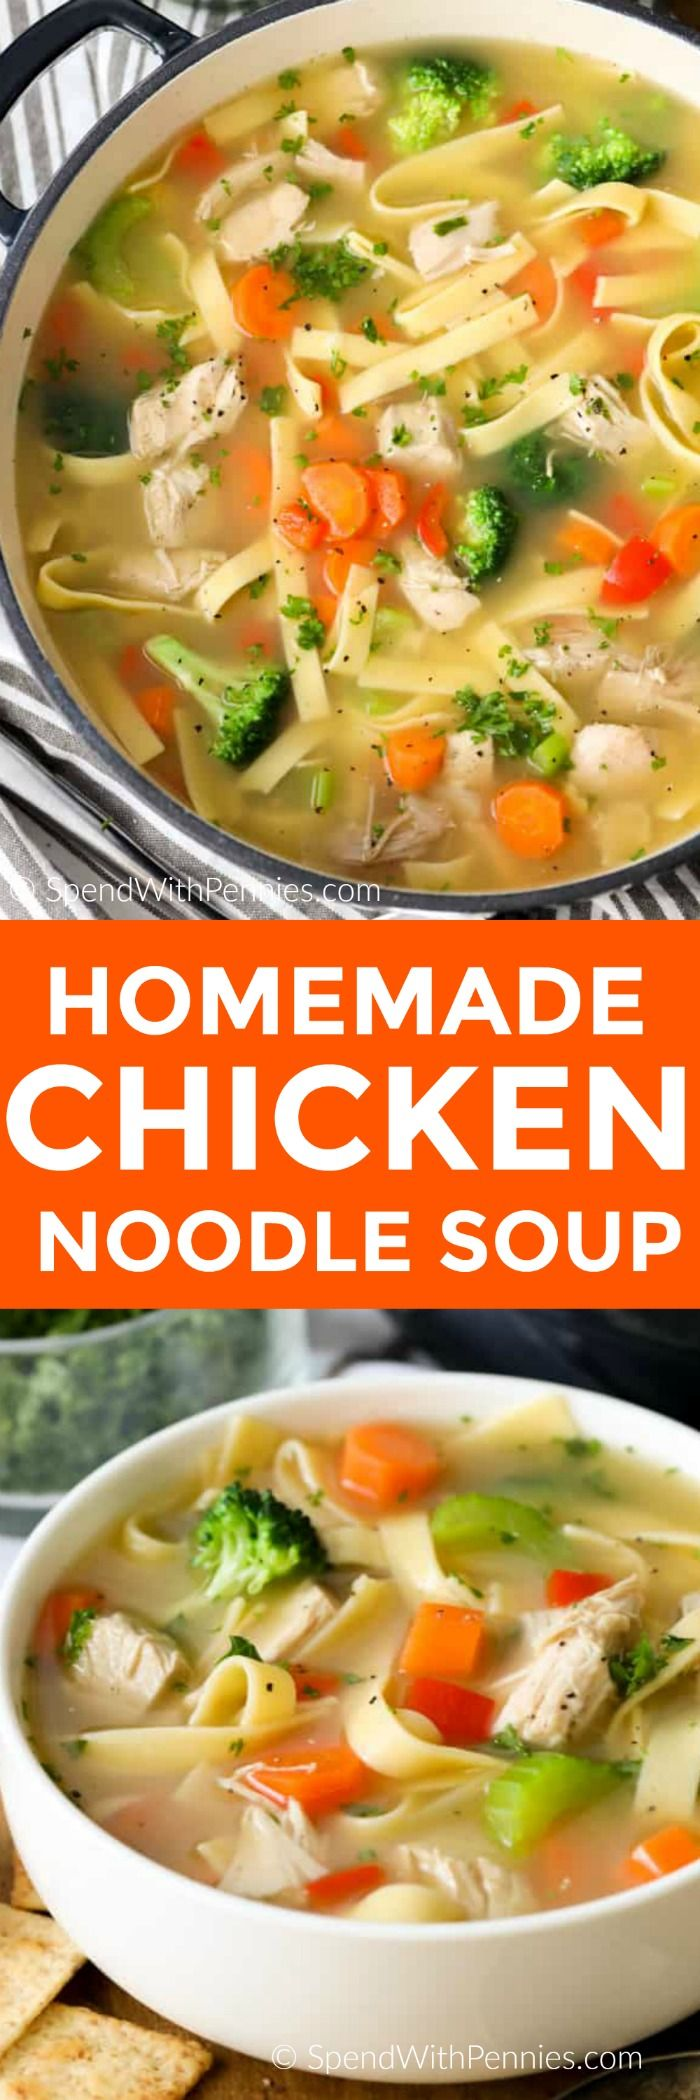 homemade chicken noodle soup takes about 20 minutes to